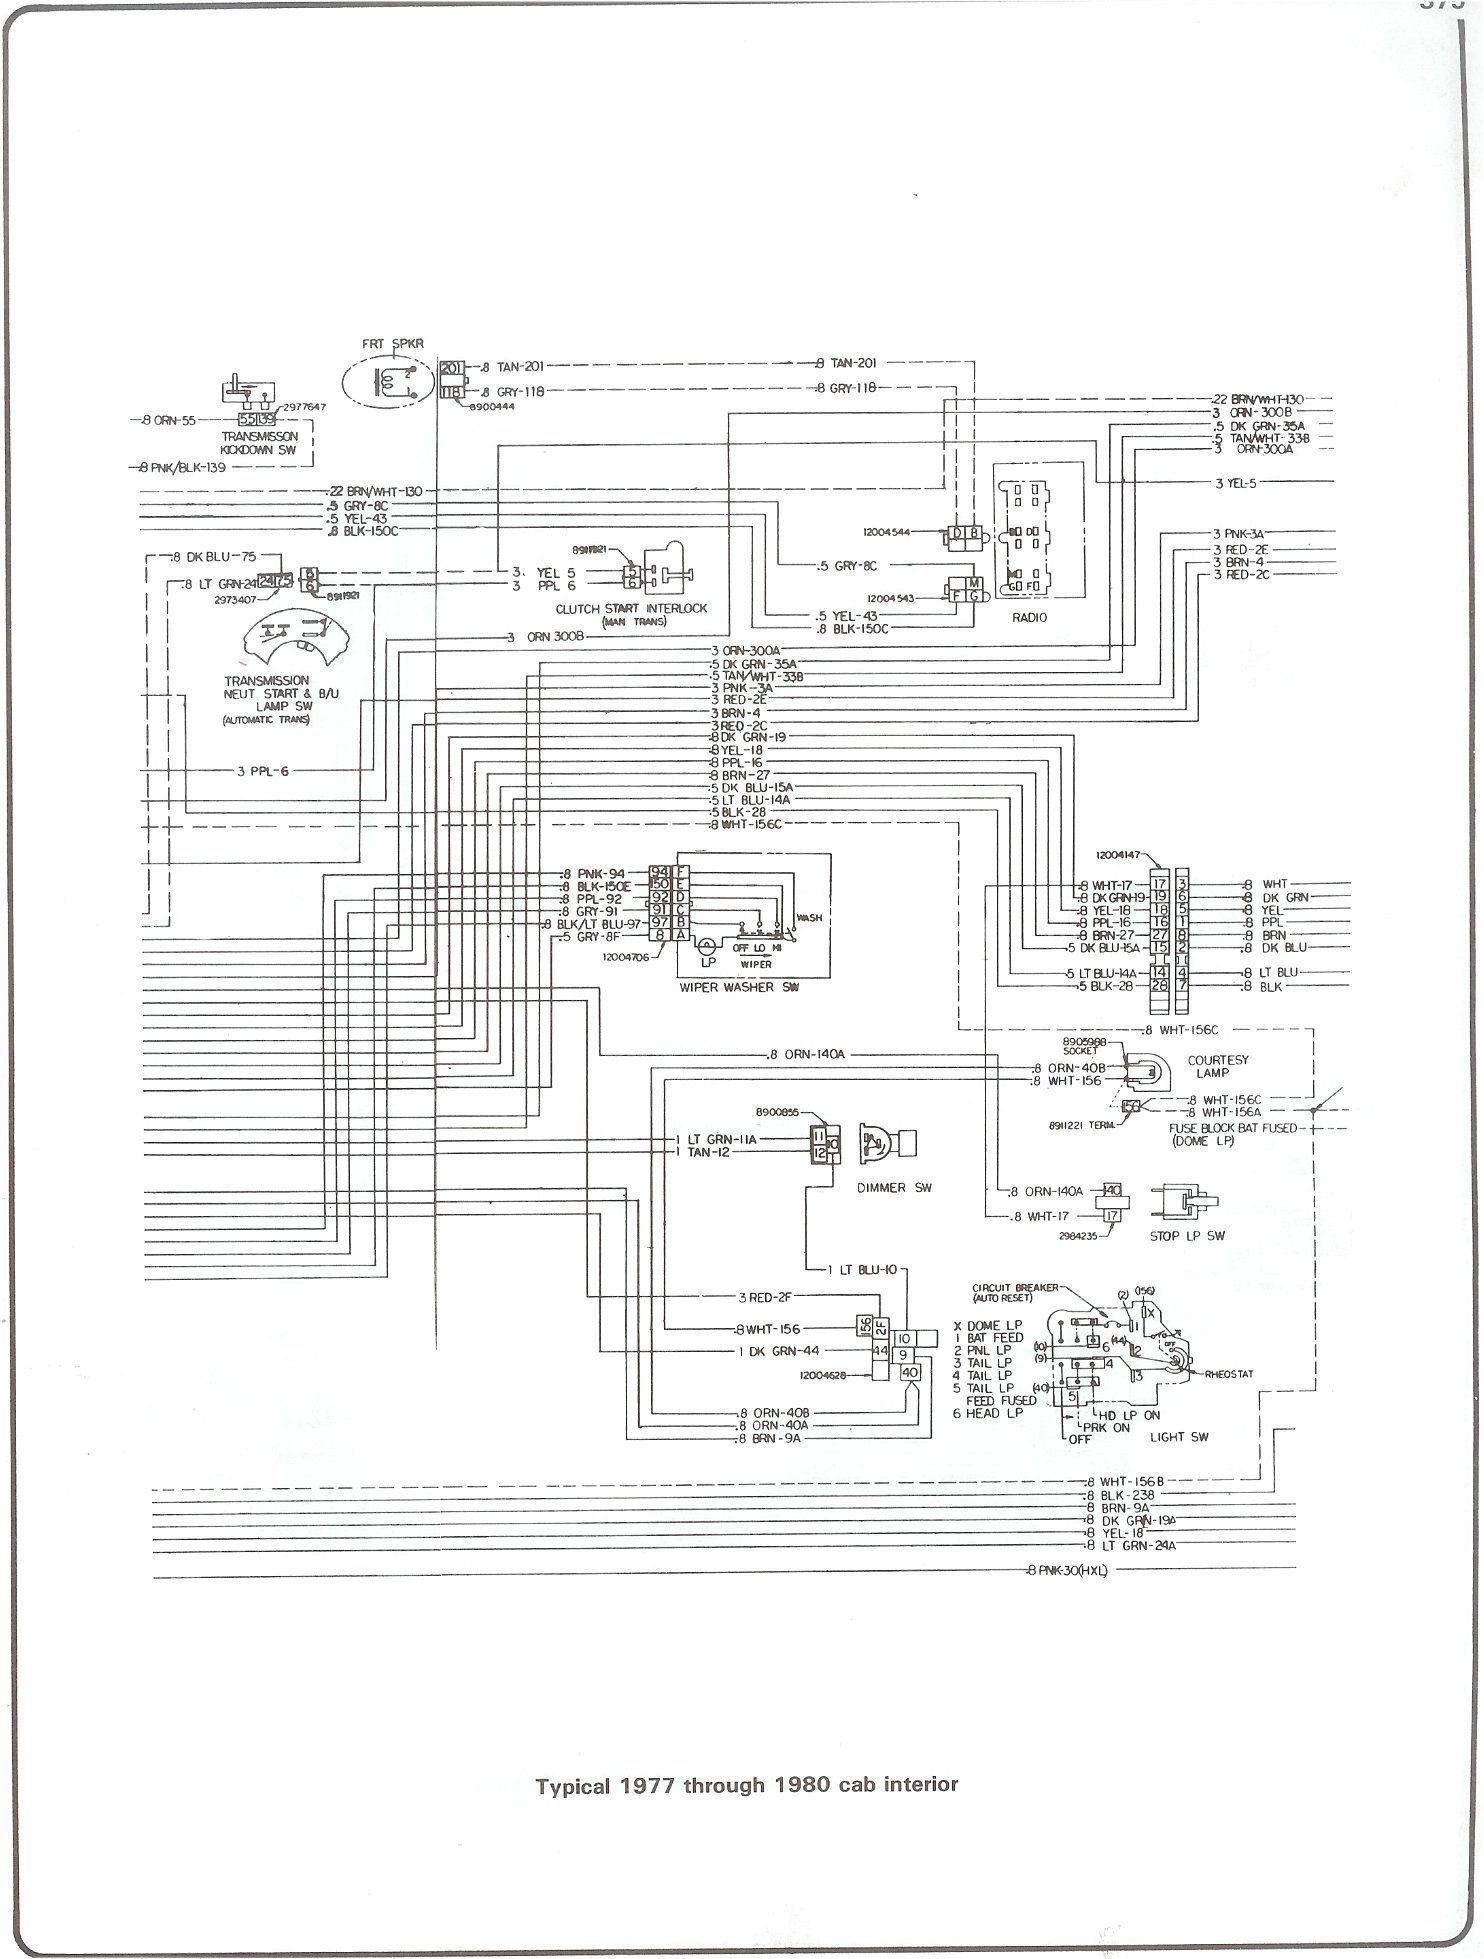 86 Chevy C10 Wiring Diagram Switch List Of Schematic Circuit Electrical Symbols As Well 1955 In Complete 73 87 Diagrams Rh Forum 87chevytrucks Com